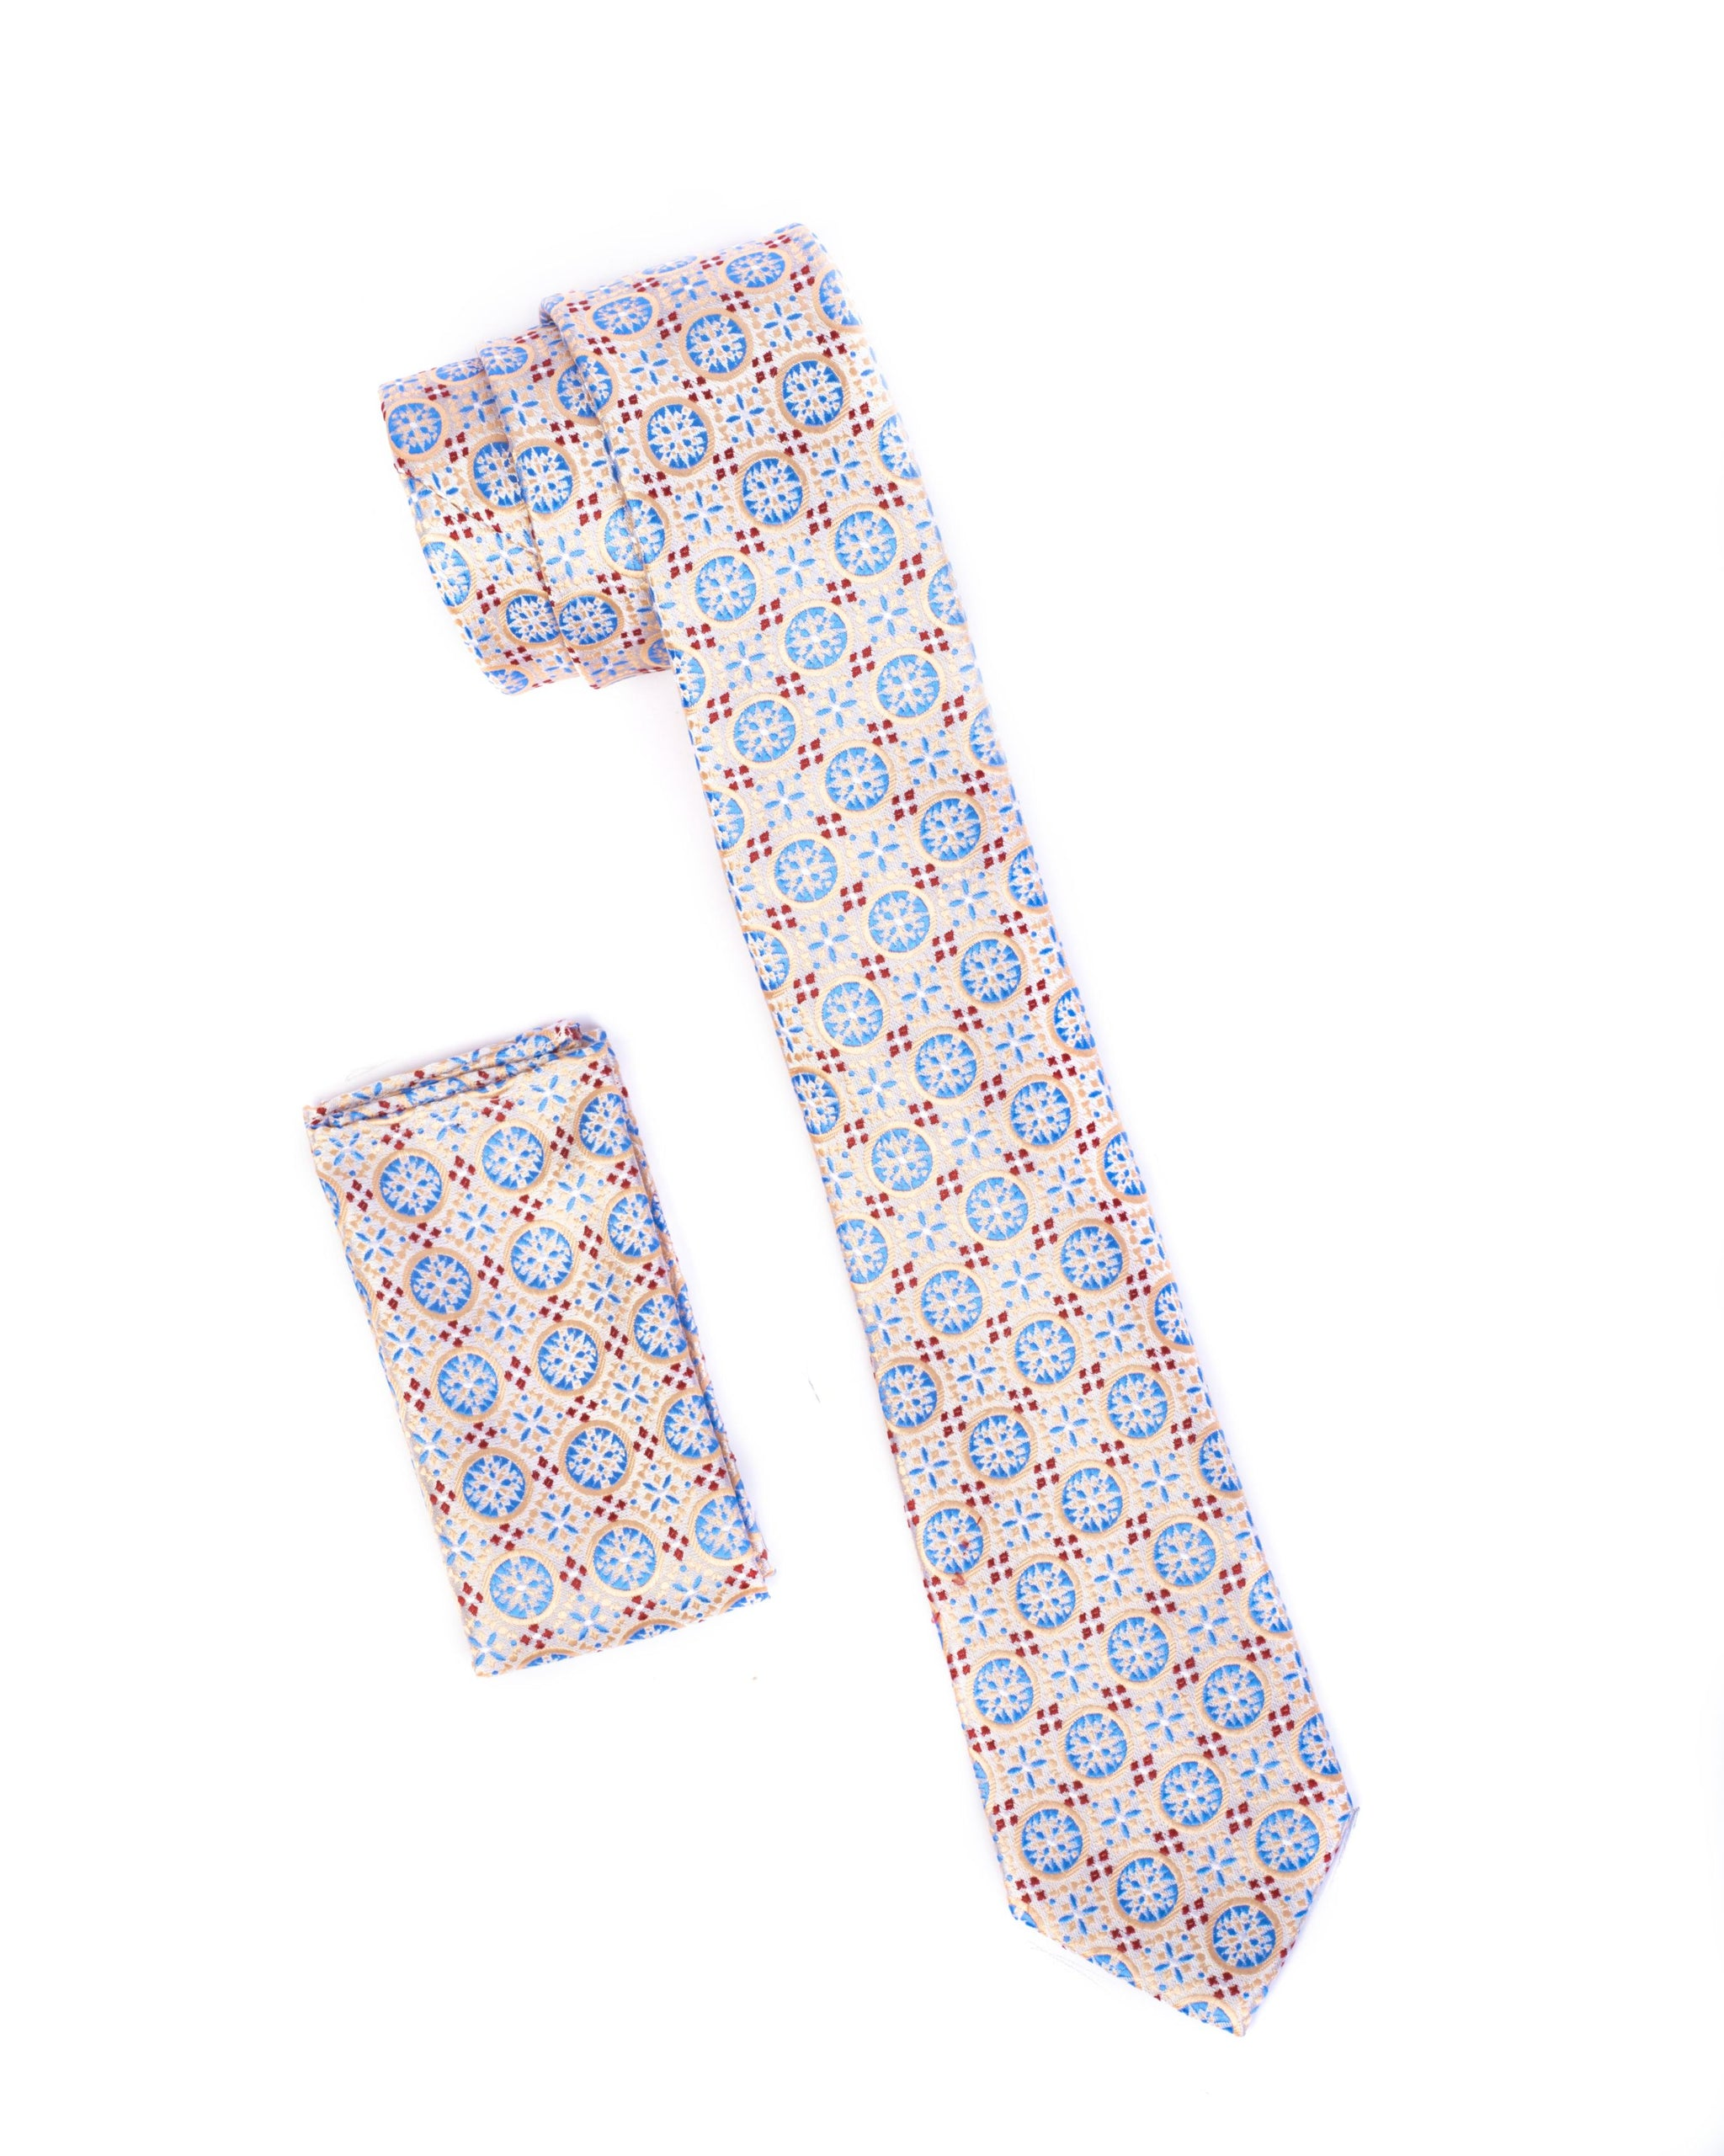 Crème & Sky Blue Circle Patterned Tie & Pocket Square